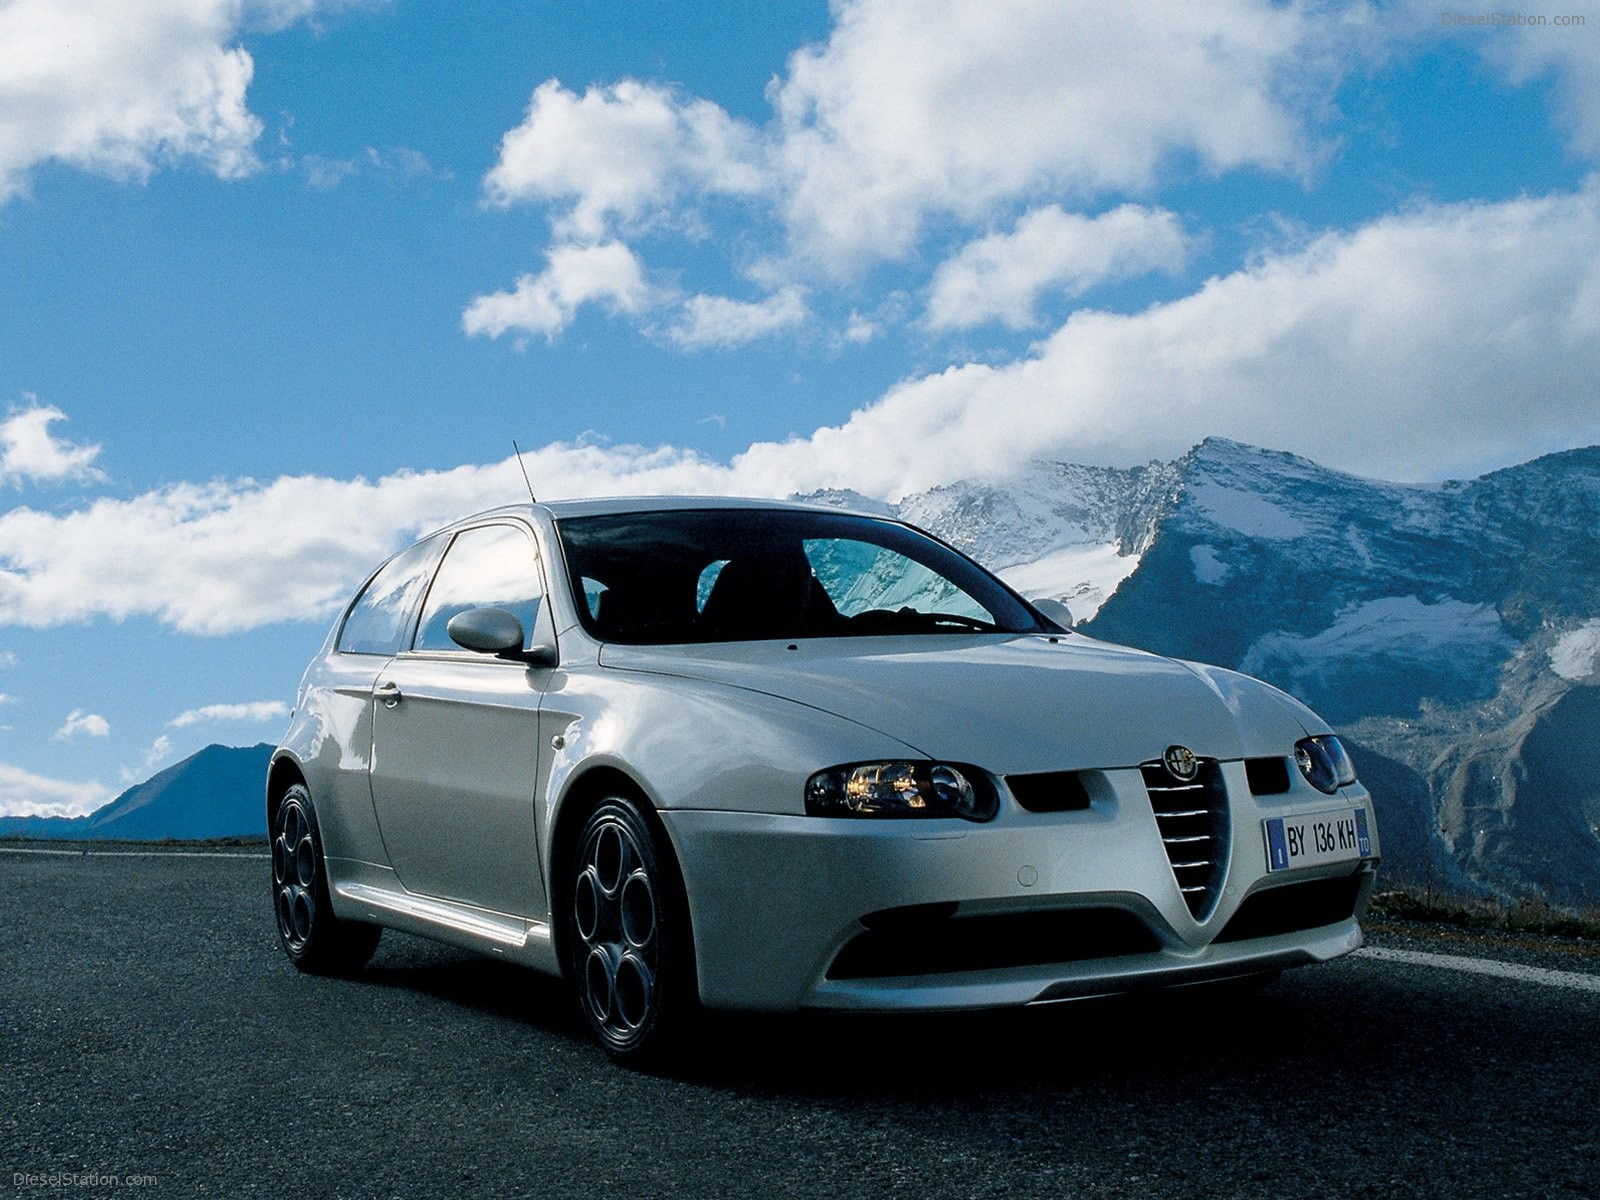 1600x1200 - Alfa Romeo 147 Wallpapers 12